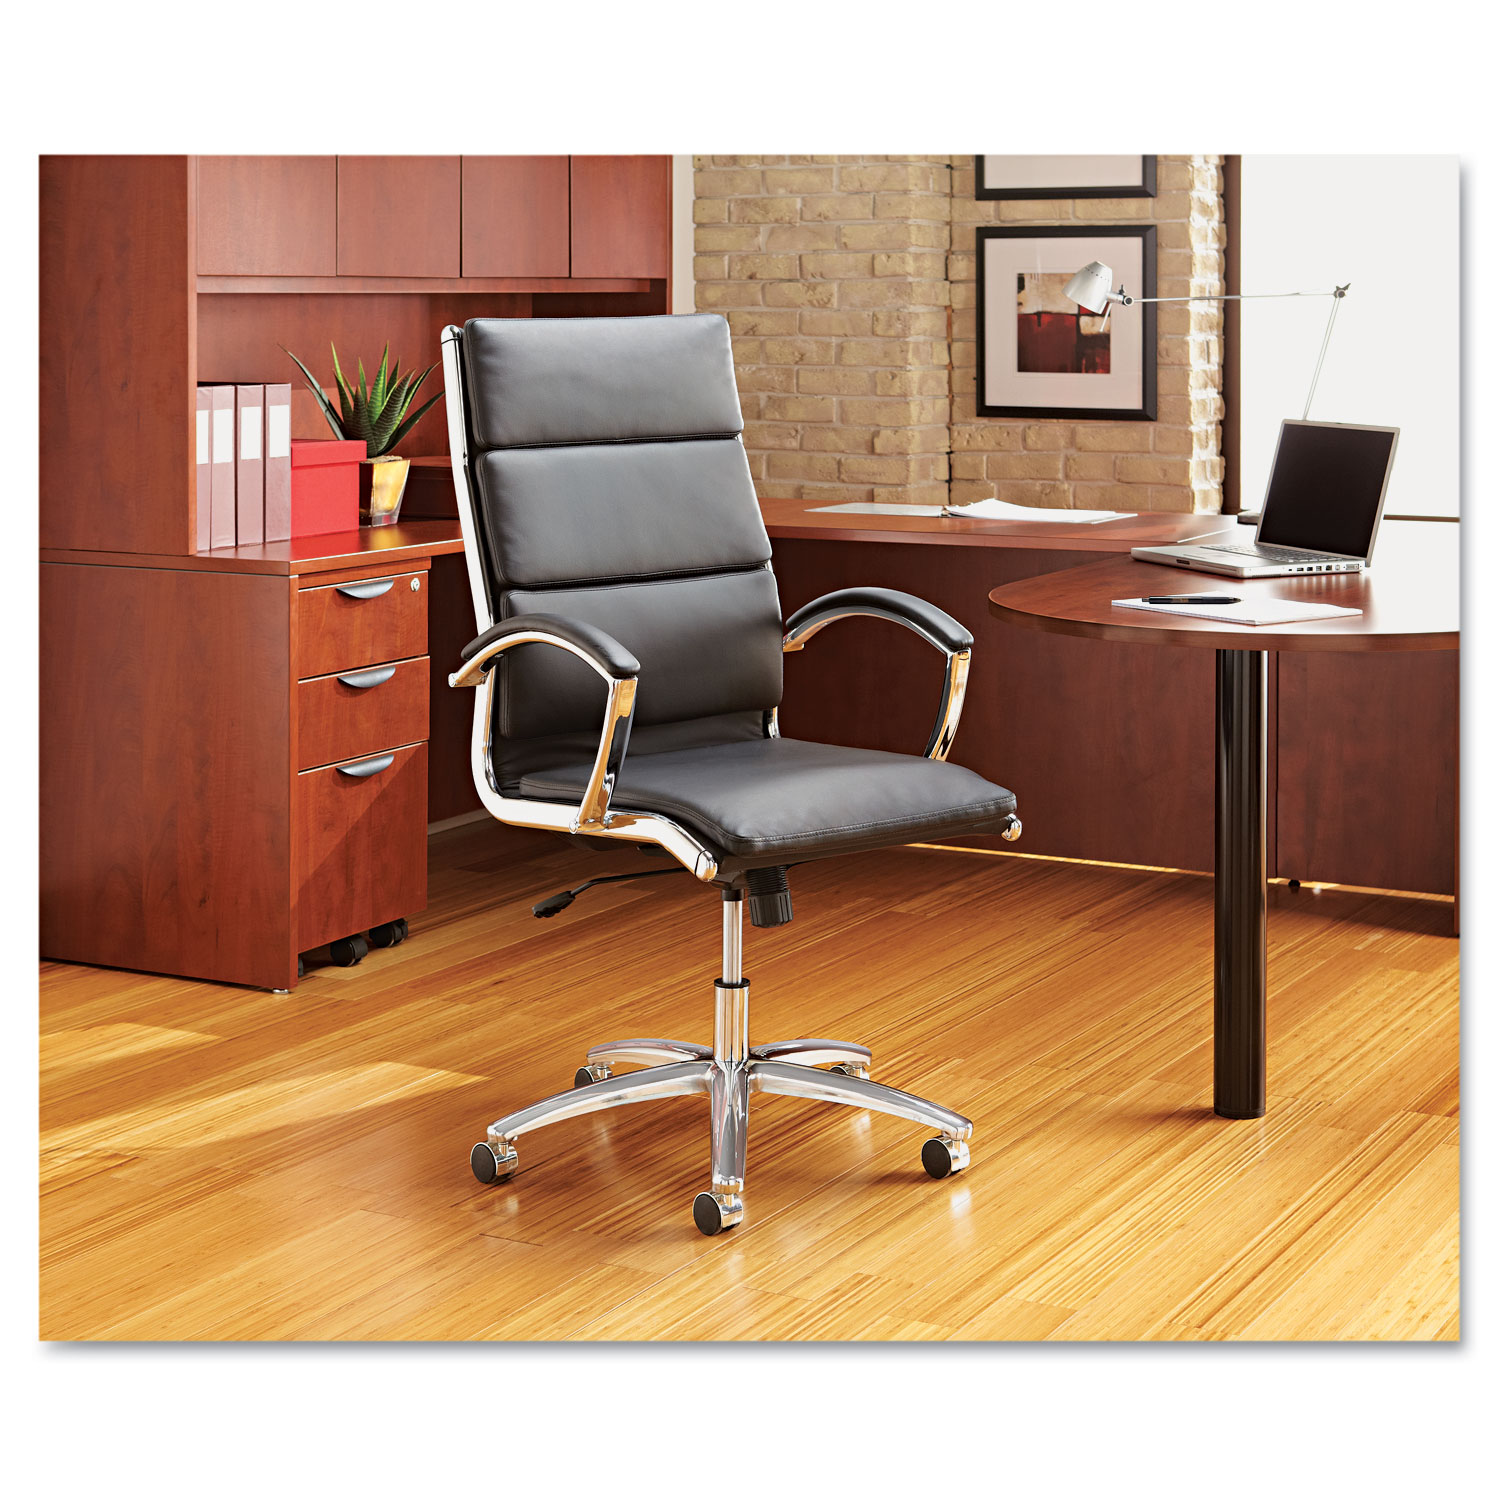 Alera Neratoli Series High-Back Swivel/Tilt Chair Black Leather Chrome Frame  sc 1 st  OnTimeSupplies.com & Alera Neratoli Series High-Back Swivel/Tilt Chair by Alera ...